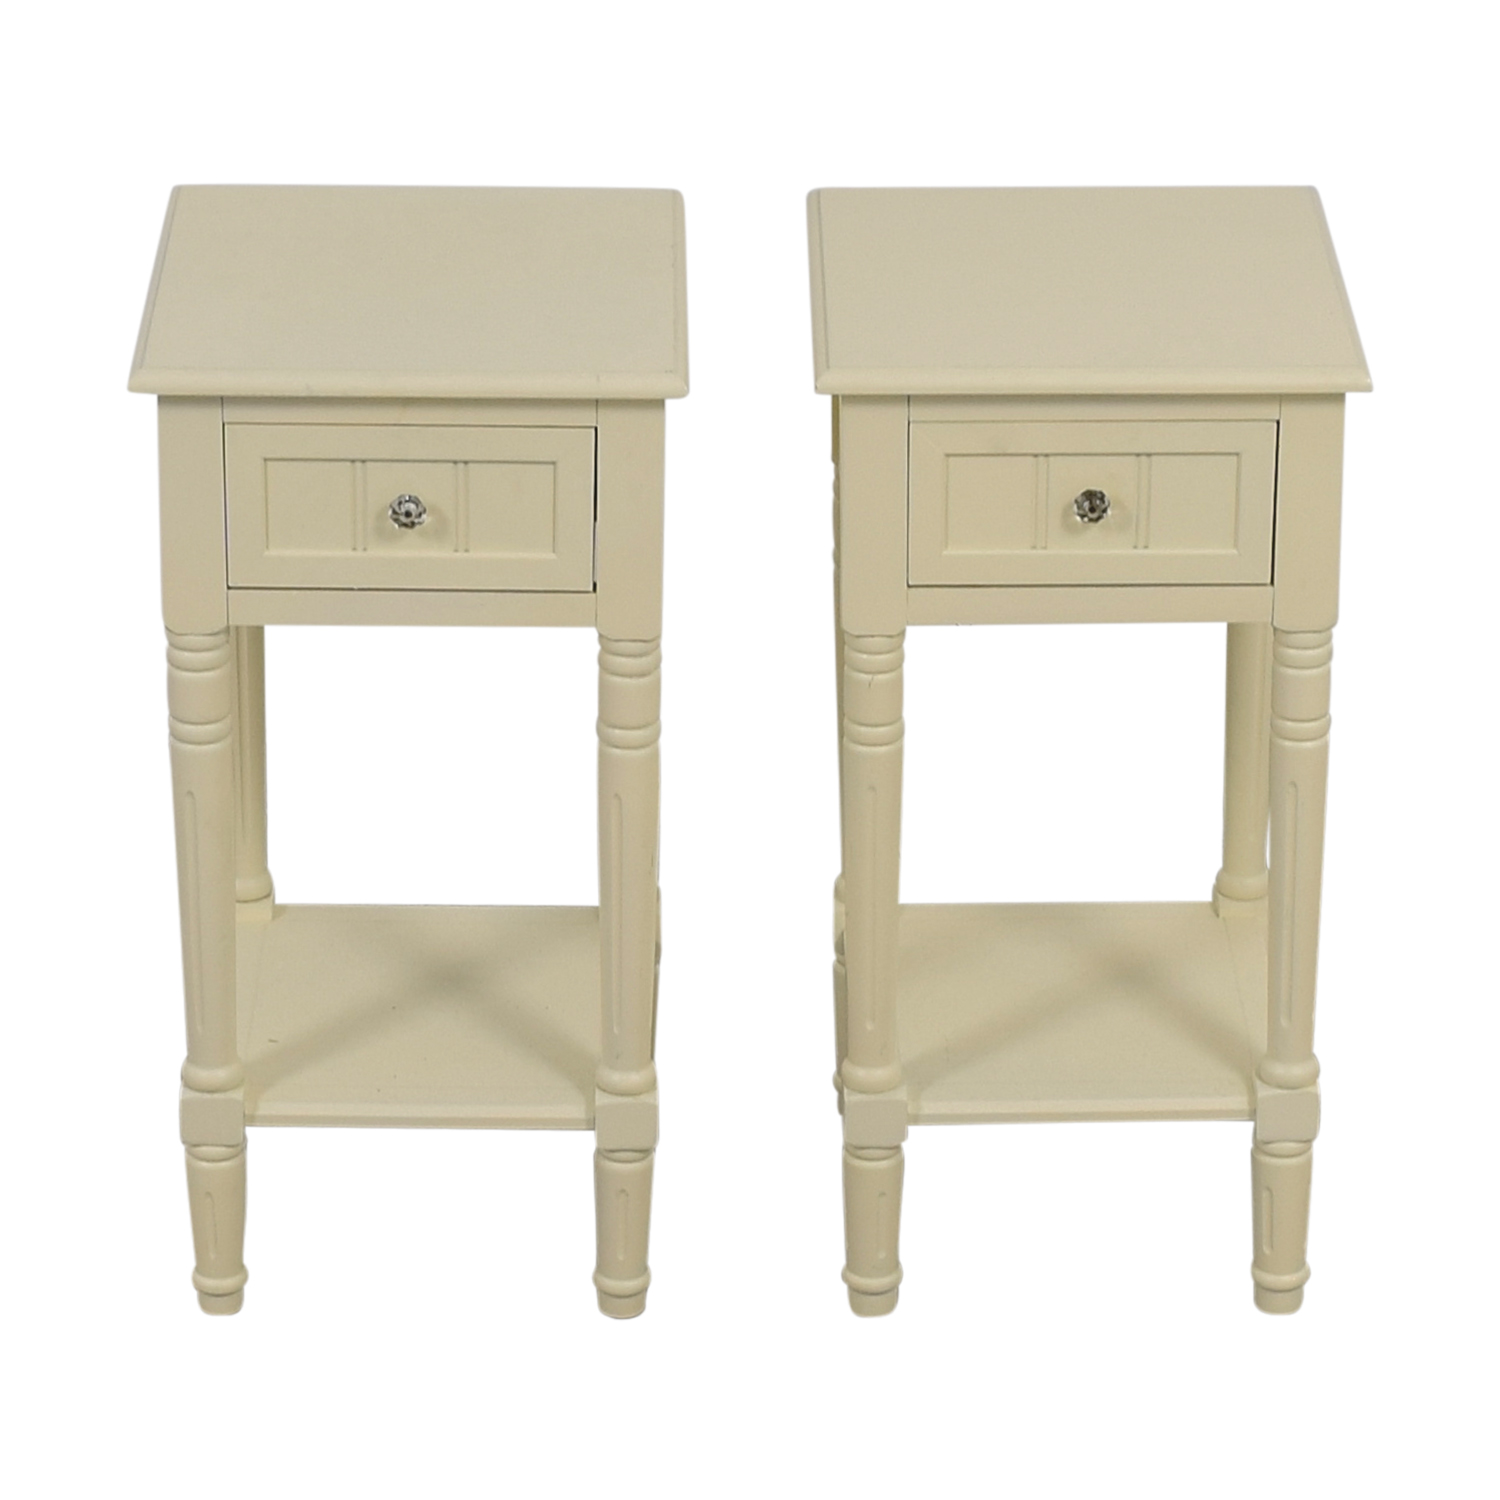 Wayfair Wayfair Lillian Off White Night Stands End Tables